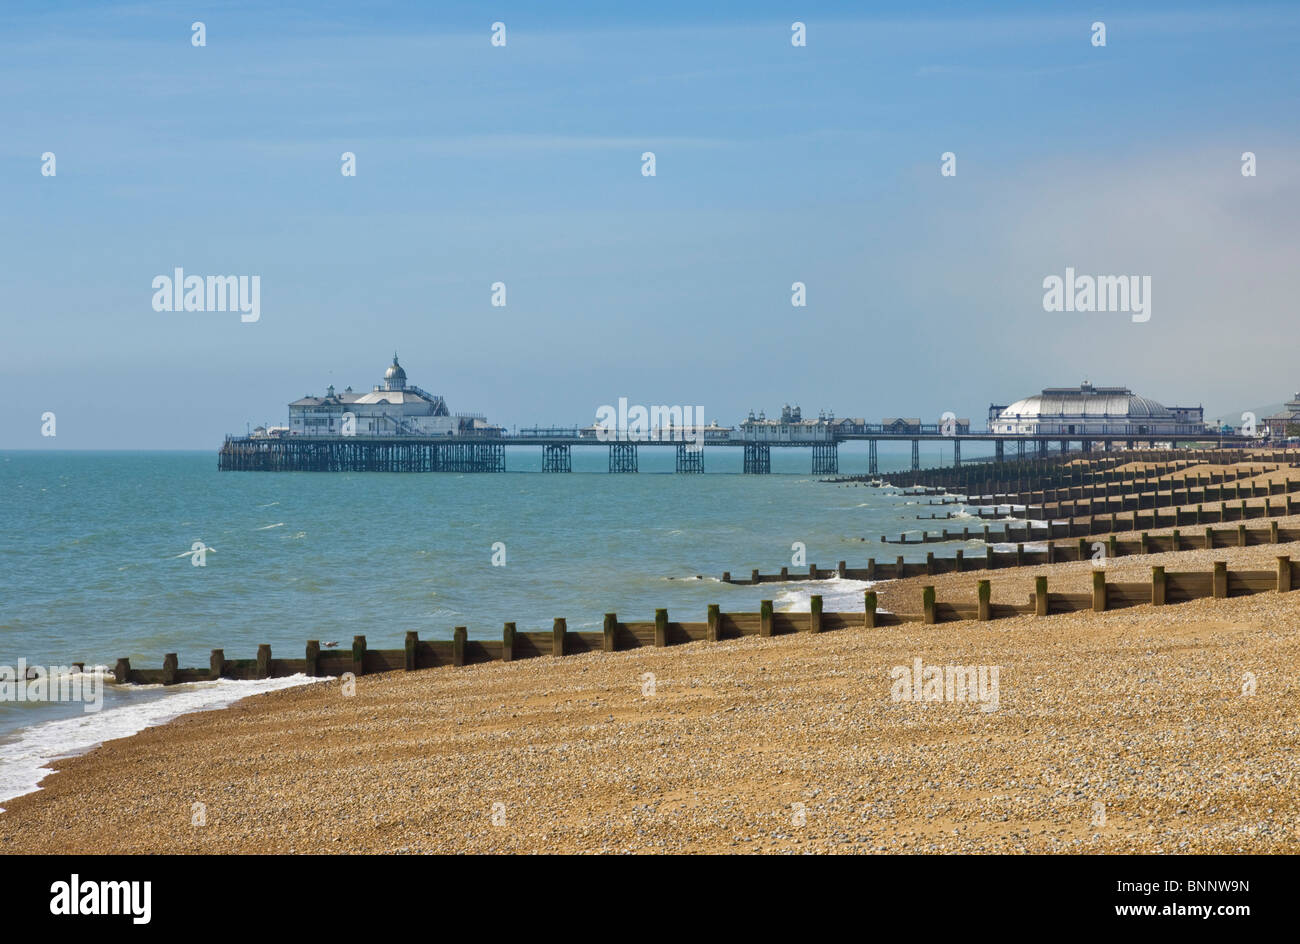 Pebble Beach und Buhnen, Eastbourne Pier in der Ferne, Eastbourne, East Sussex, England, GB, UK, EU, Europa Stockfoto